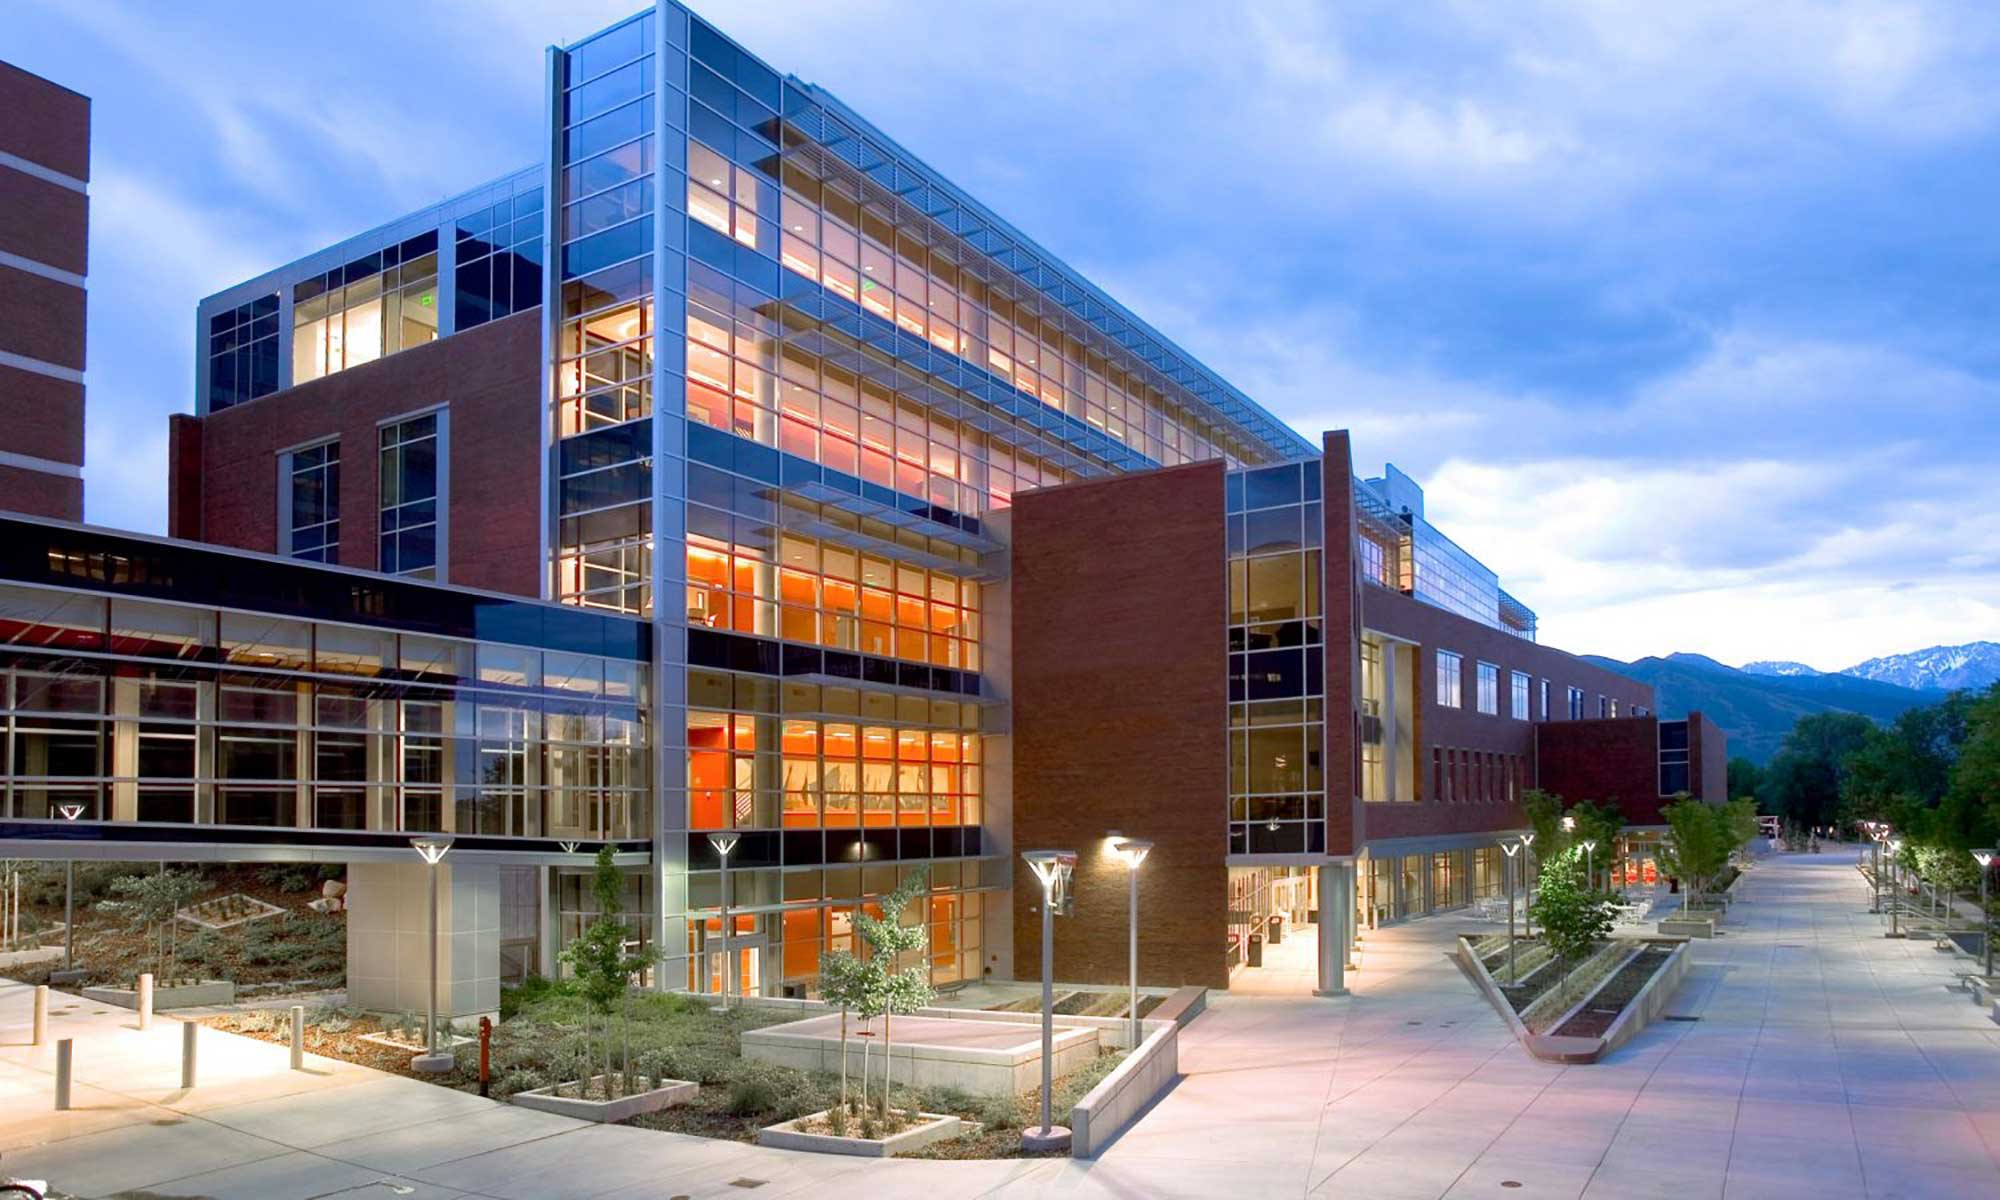 Eccles Health Sciences Education Building